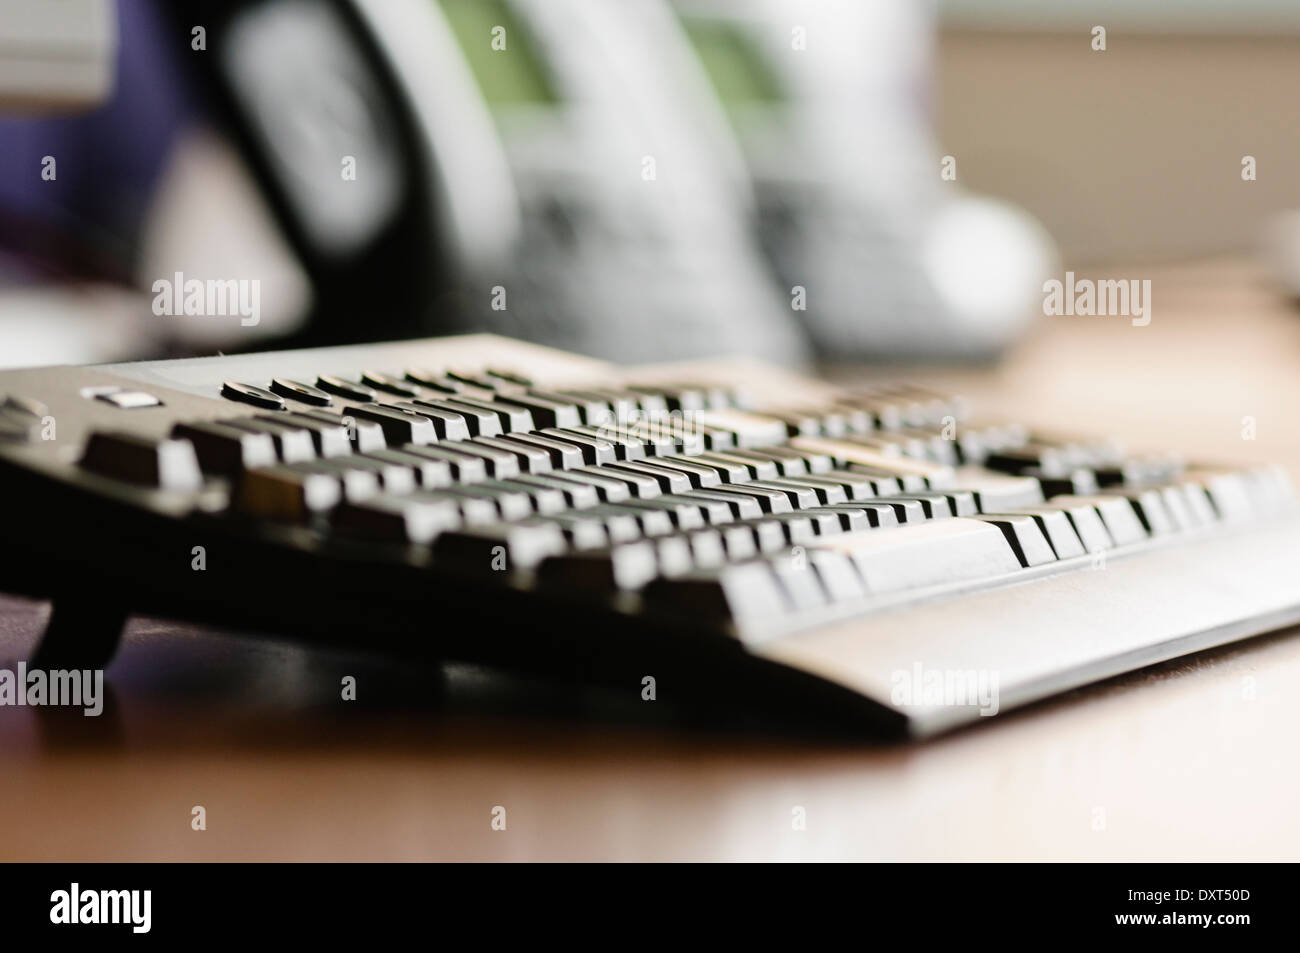 A computer keyboard on an office desk - Stock Image